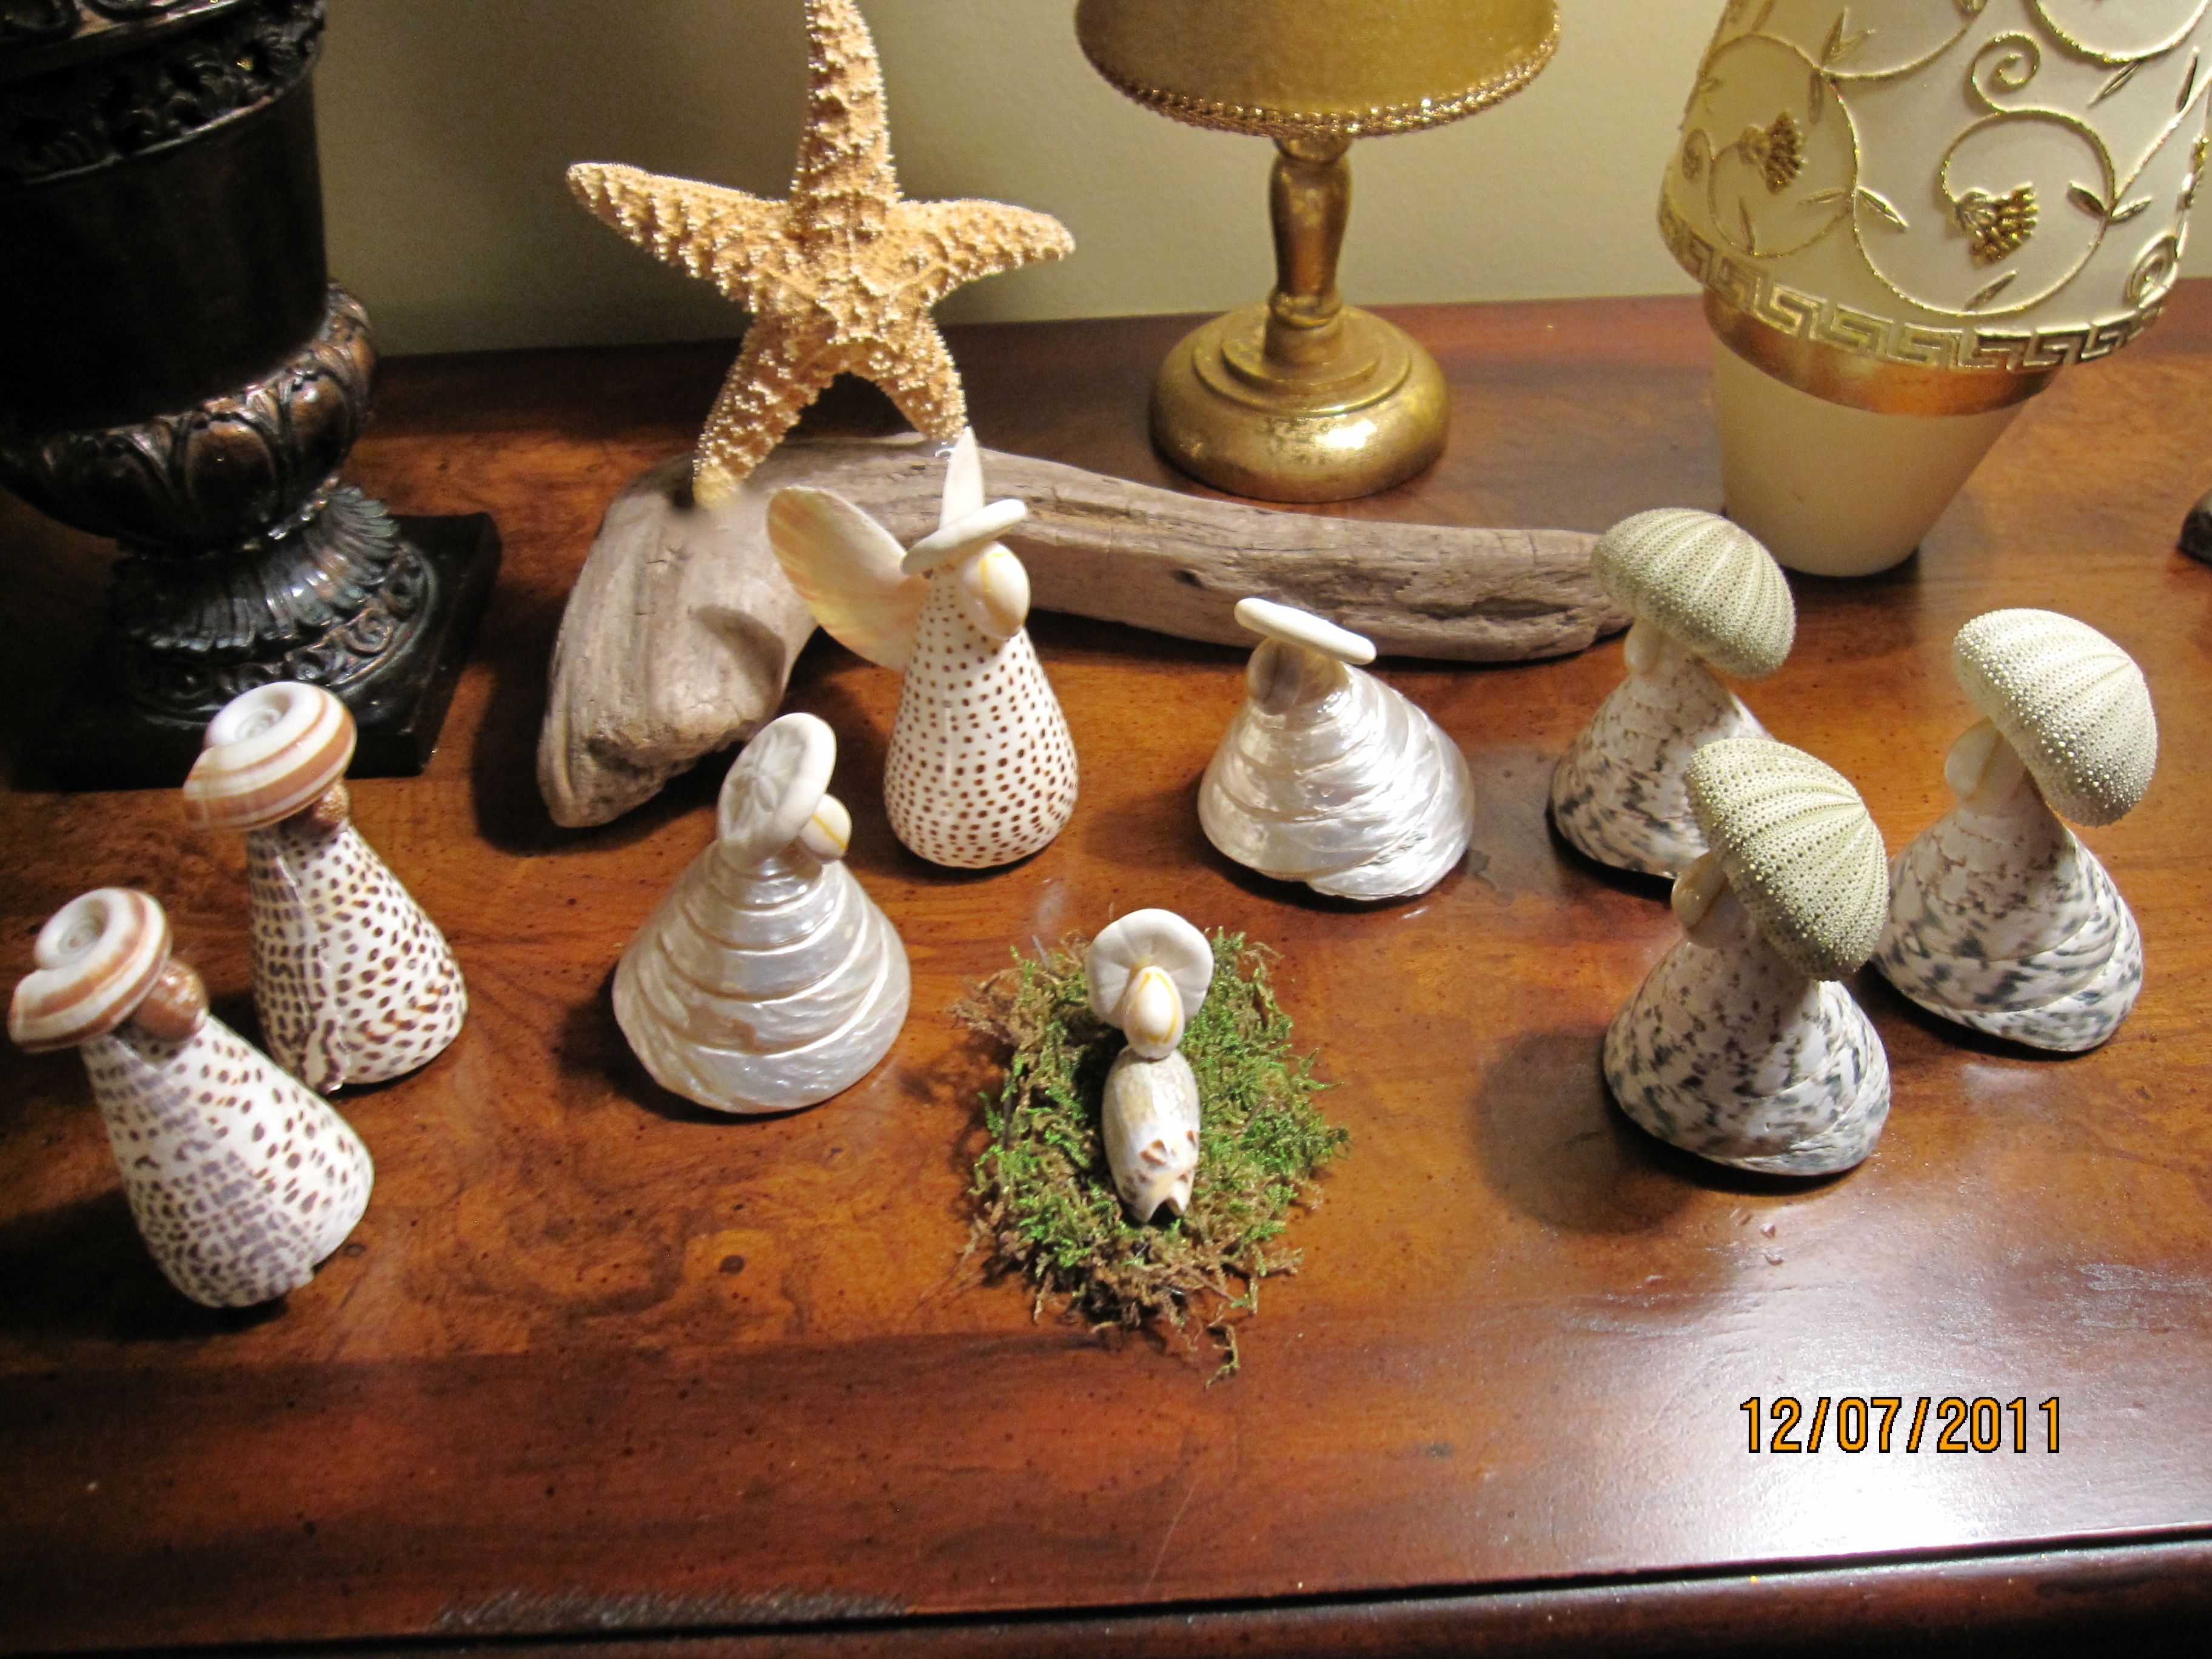 Sea shell christmas ornaments - One Of My Favorite Nativity Scenes Made From Shells Purchased At The Beach